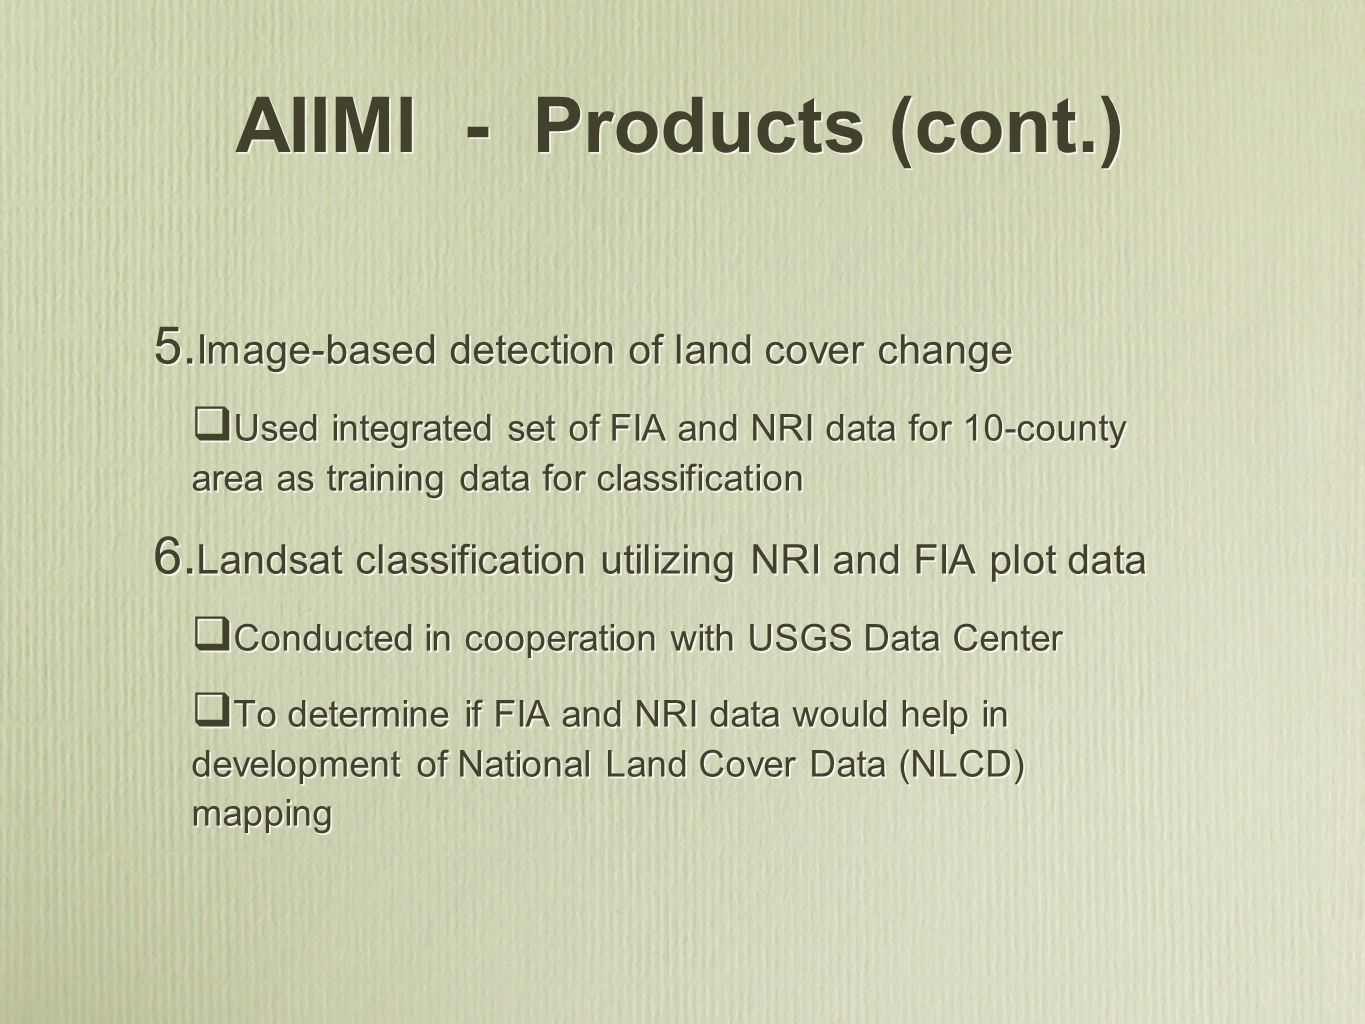 AIIMI - Products (cont.)